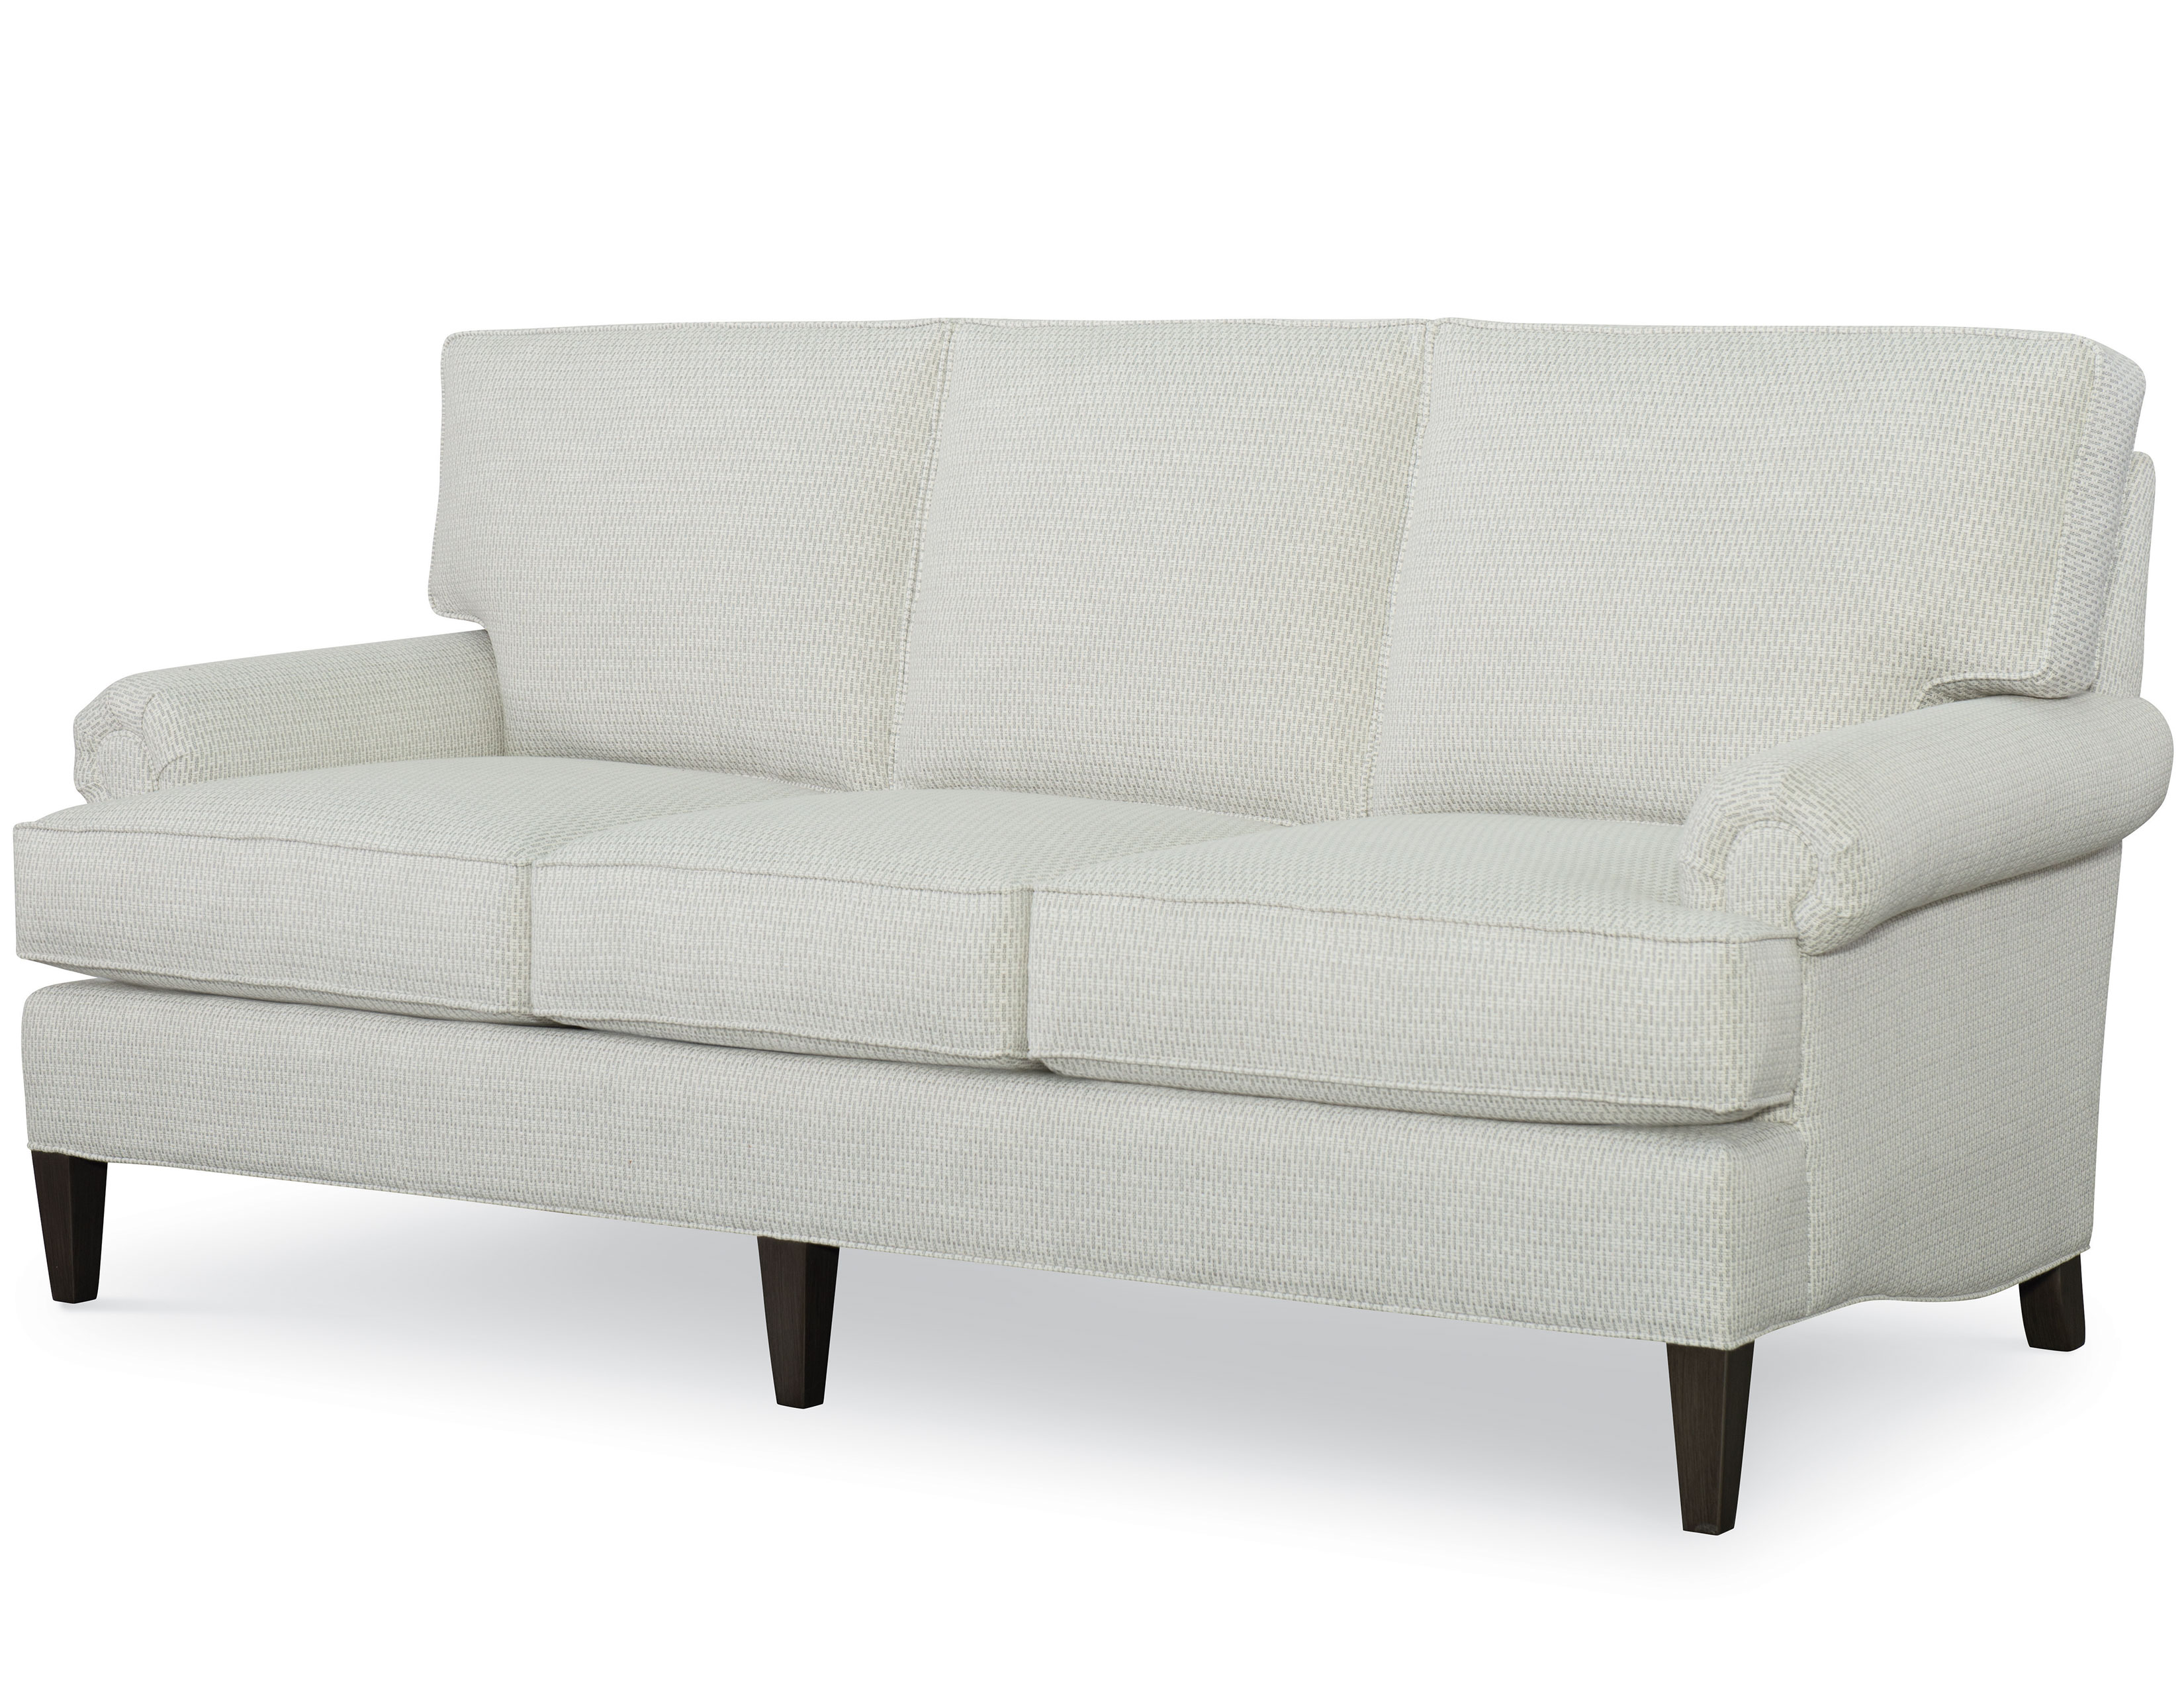 Cool Lola 75 81 Or 88 Sofa Made Sofas And Sectionals Caraccident5 Cool Chair Designs And Ideas Caraccident5Info